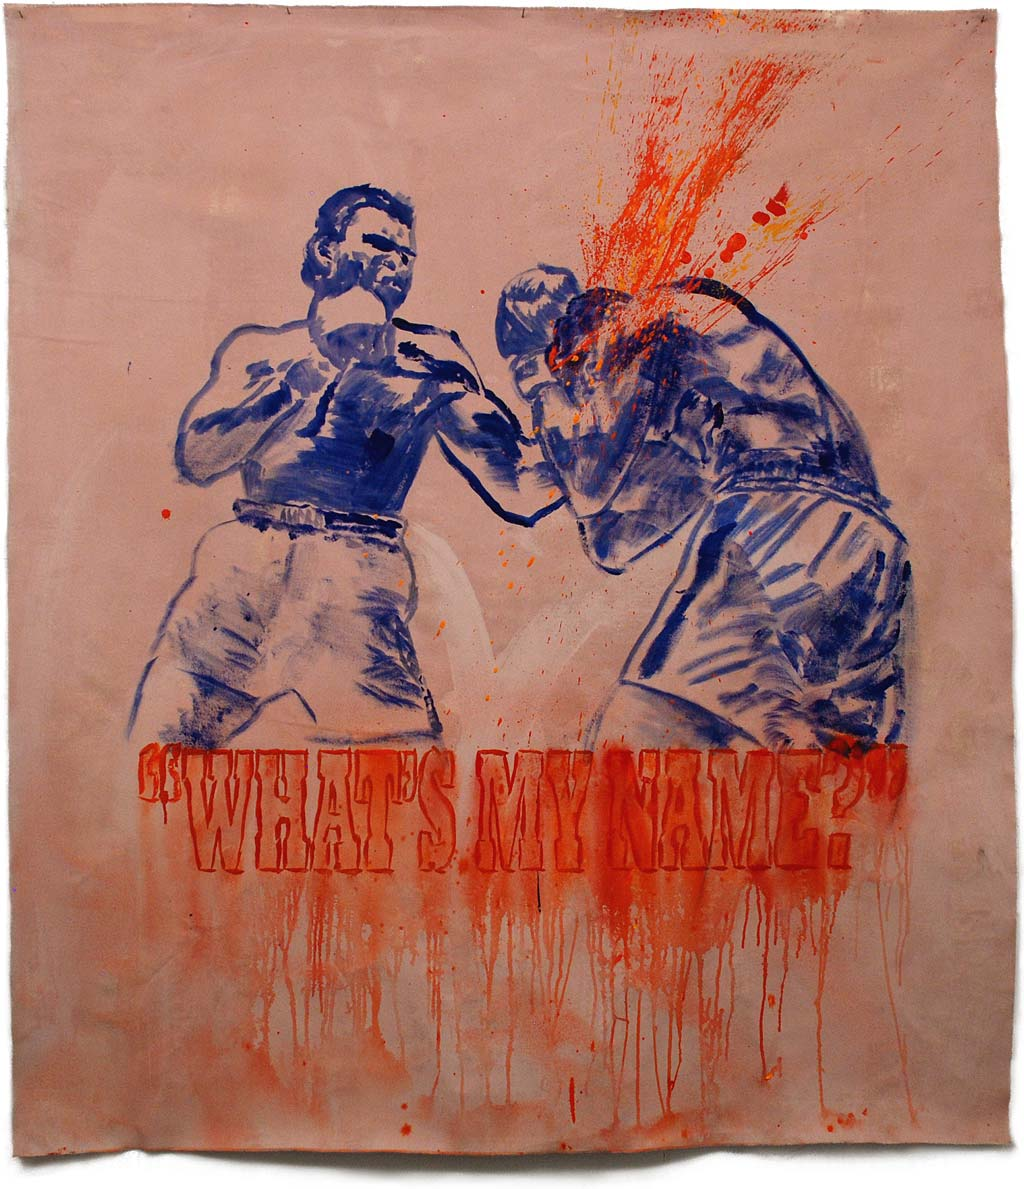 Johnny O'Brady - WHAT'S MY NAME? (Ali vs Terrell, February 6, 1967).  mixed media on canvas, approx. 60 x 53""